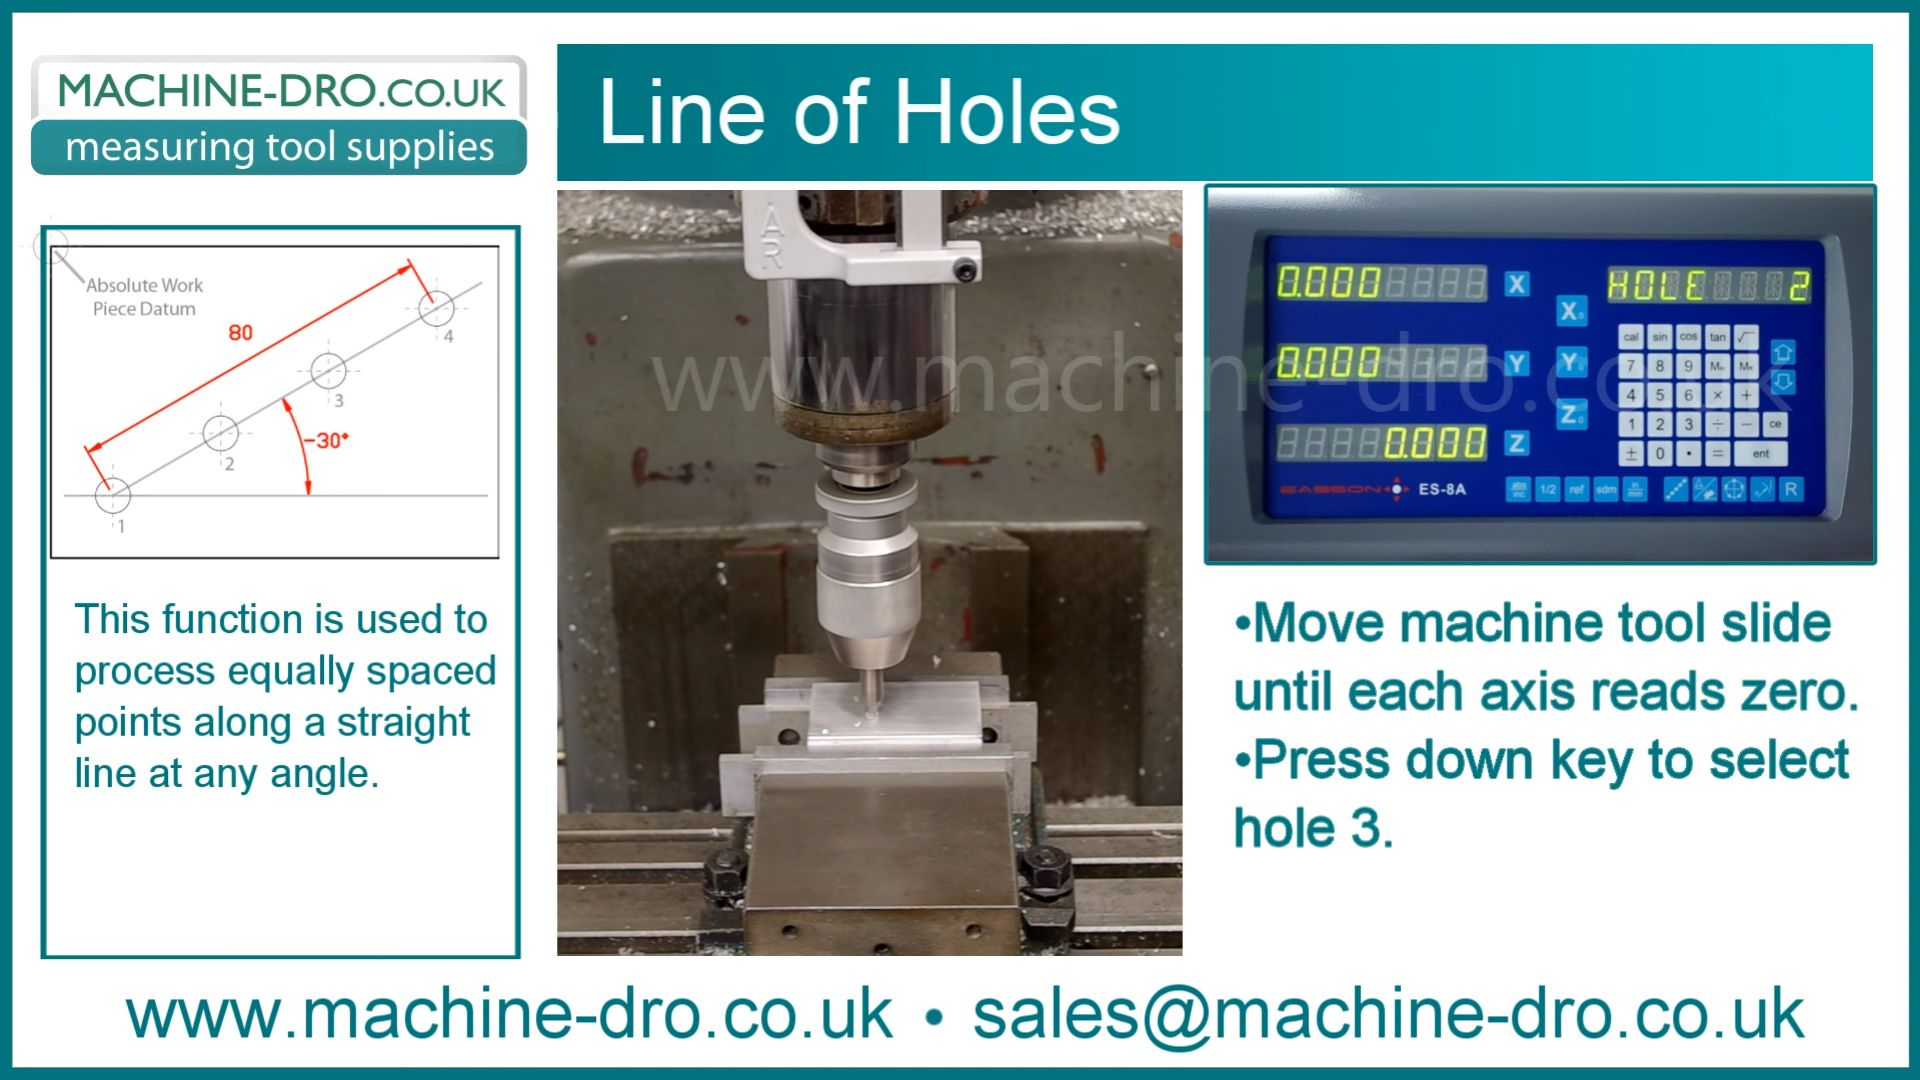 Line of Holes